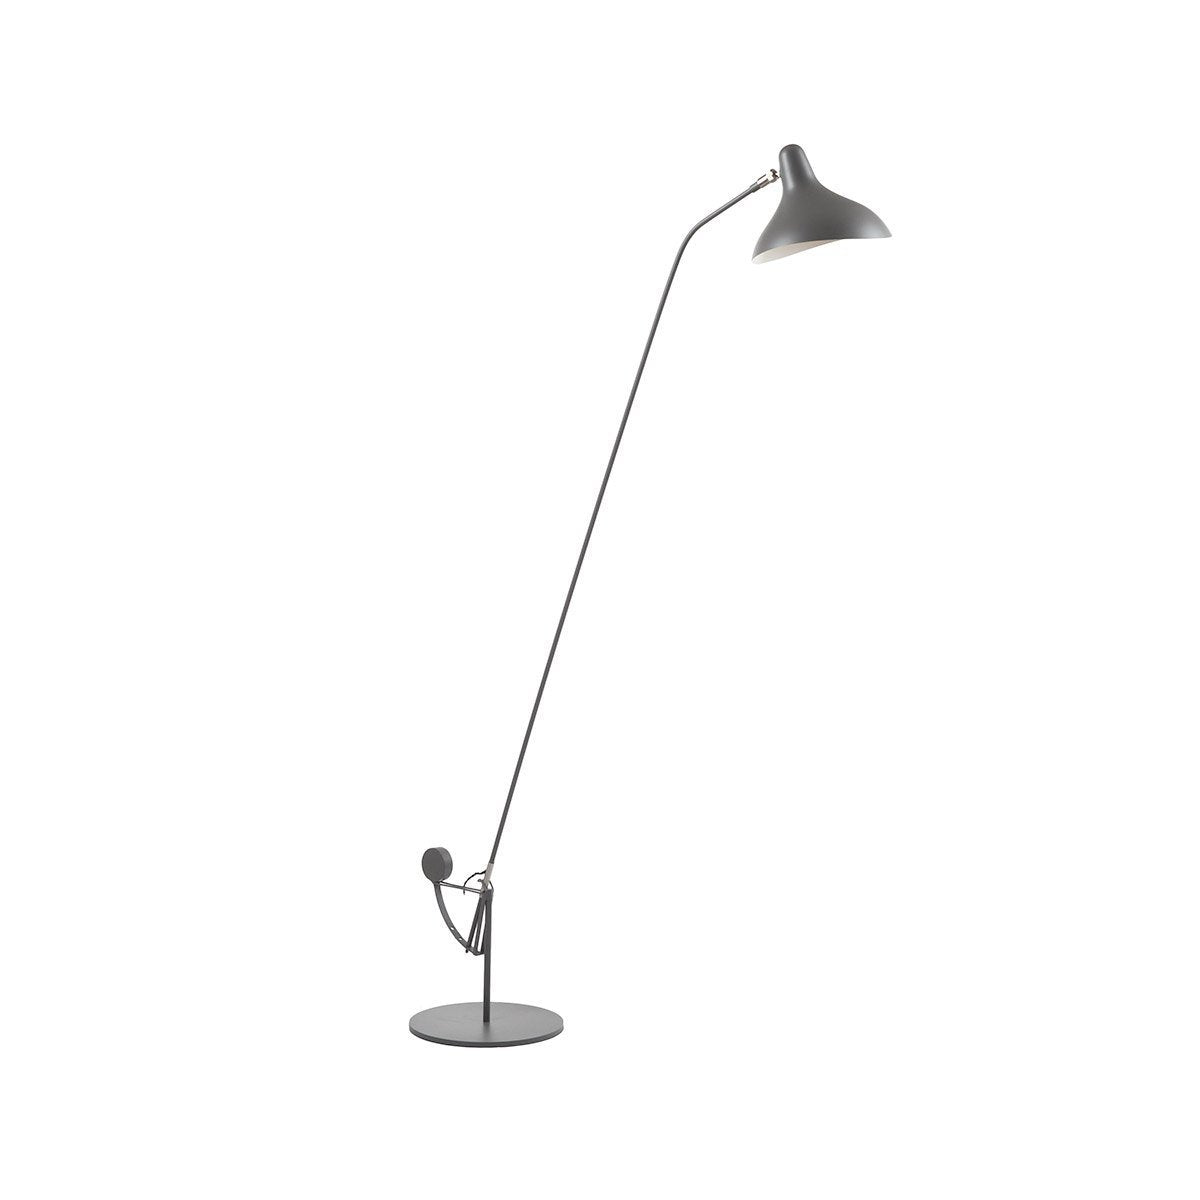 [LBF053ADGREY] Bendt grey floor lamp SALE